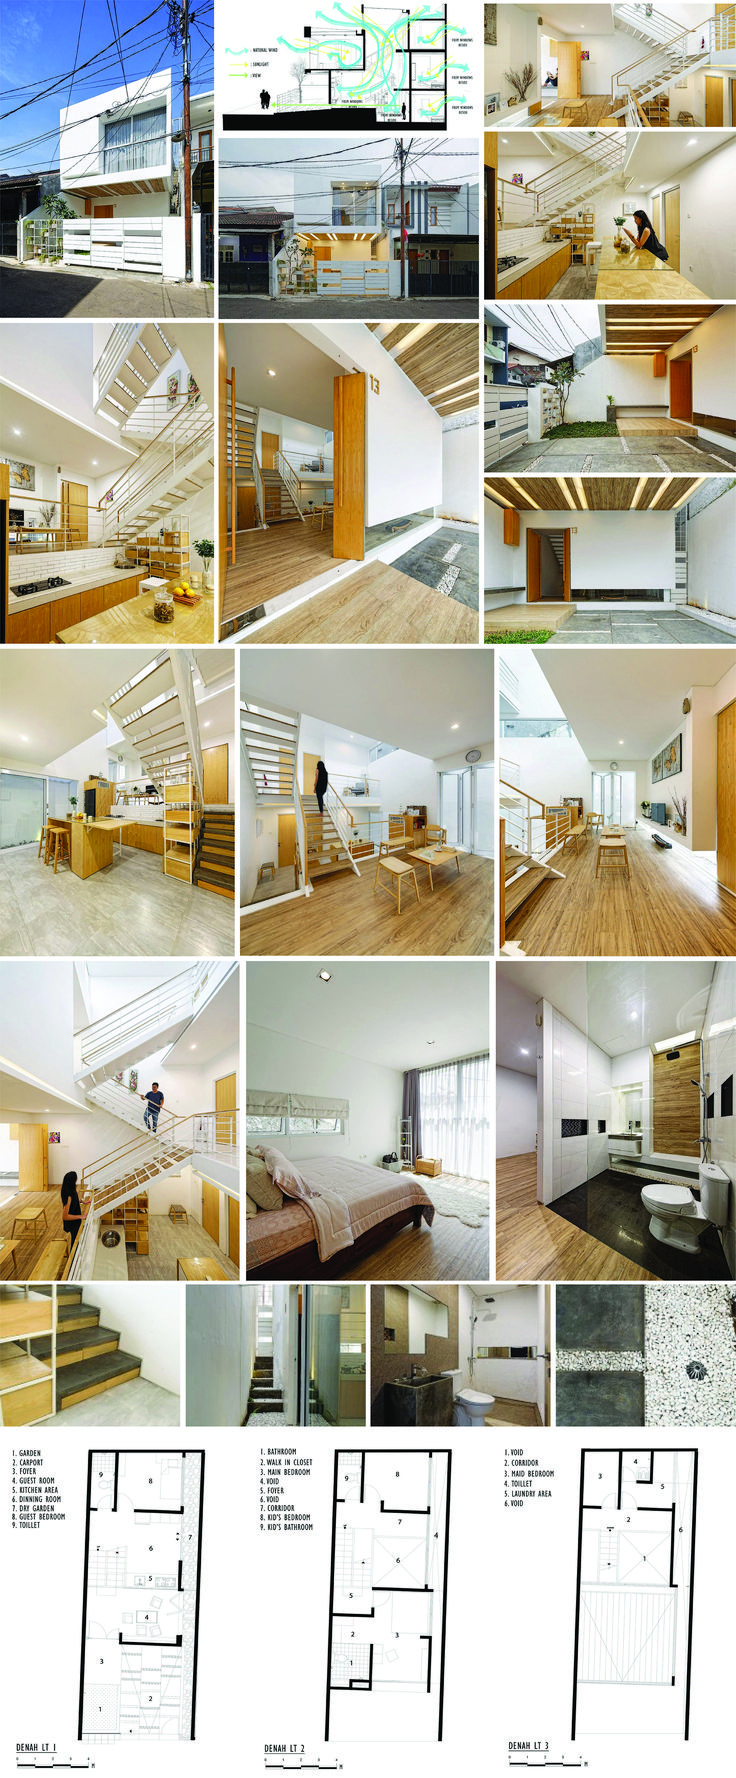 http://www.banidea.com/splow-house-by-delution-architect/